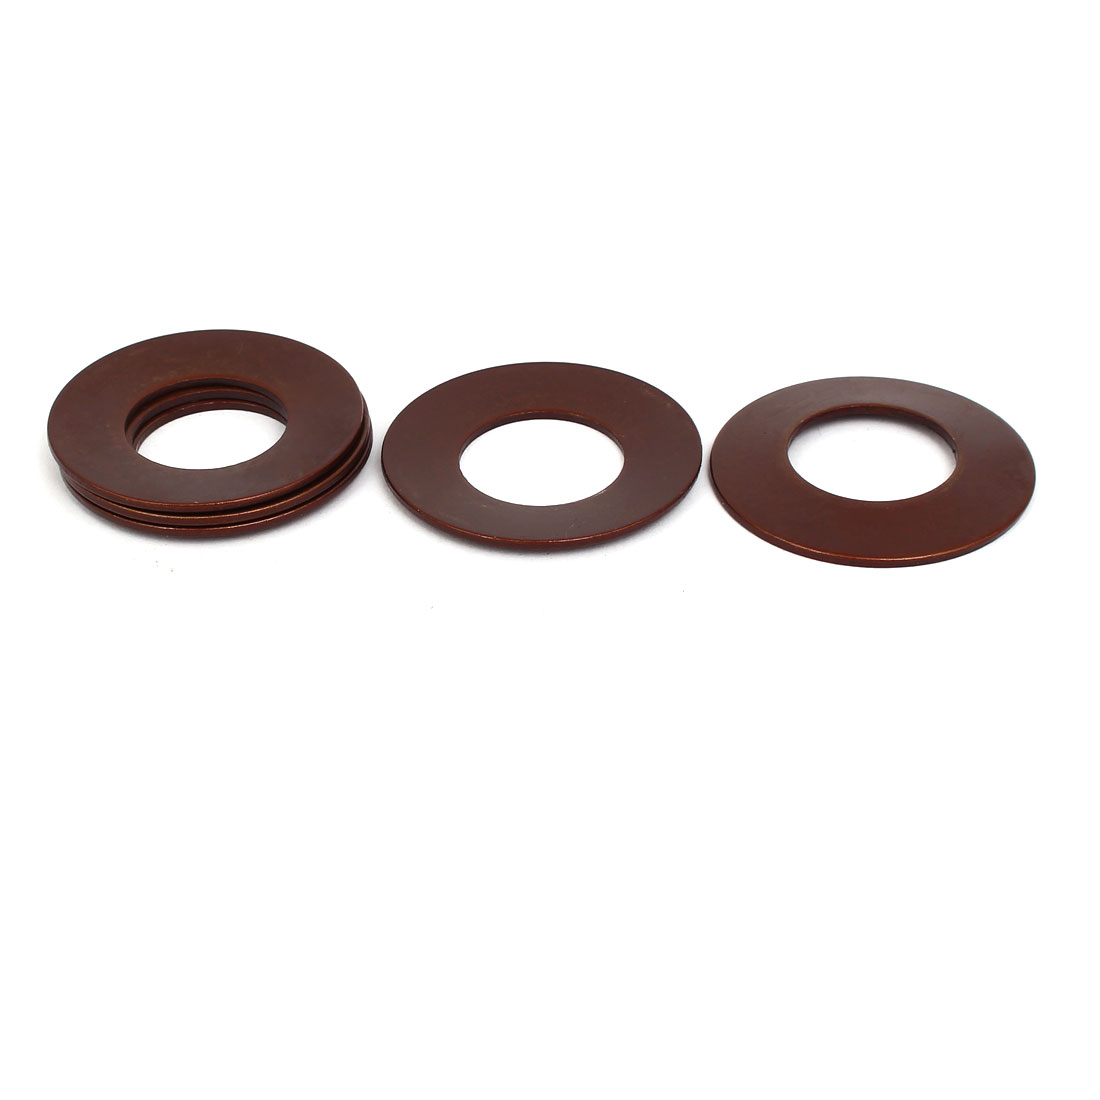 40mm Outer Dia 20.4mm Inner Dia 1.5mm Thickness Belleville Spring Washer 5pcs - image 2 de 2